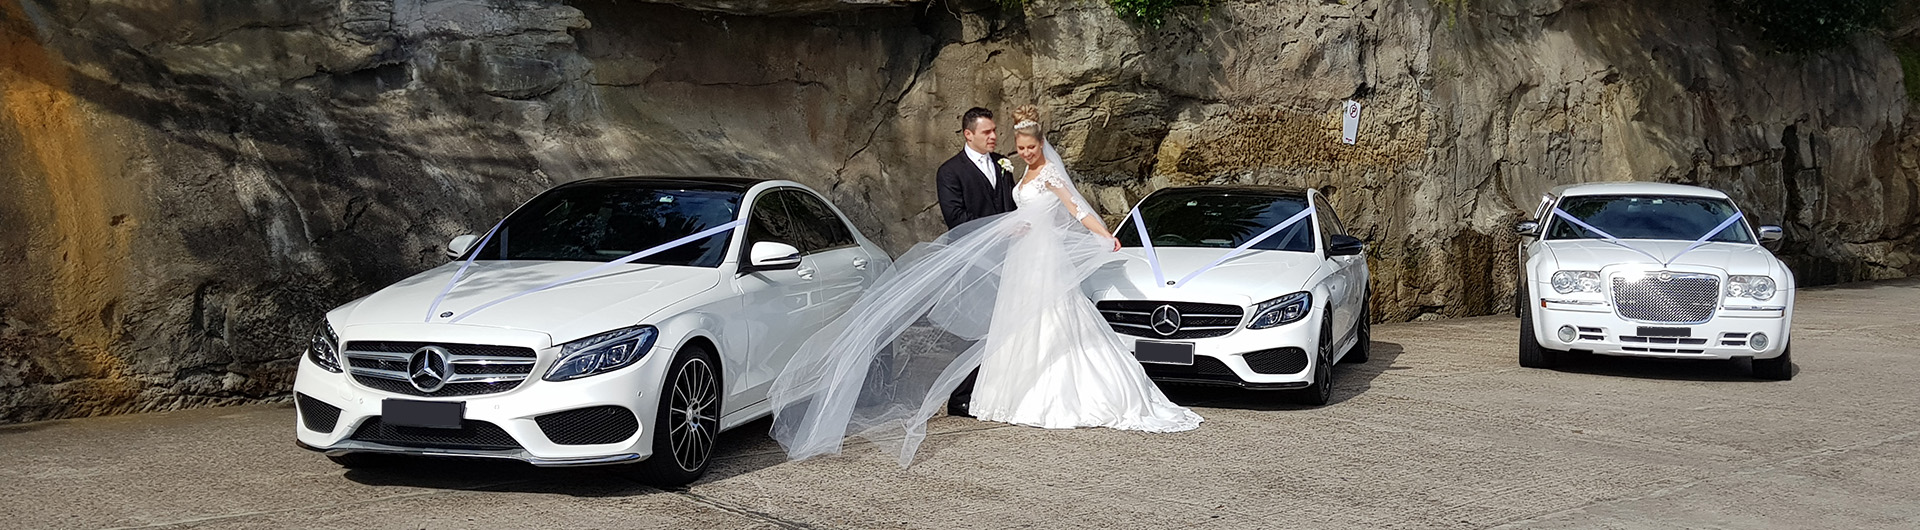 Perfection Wedding Cars Australia